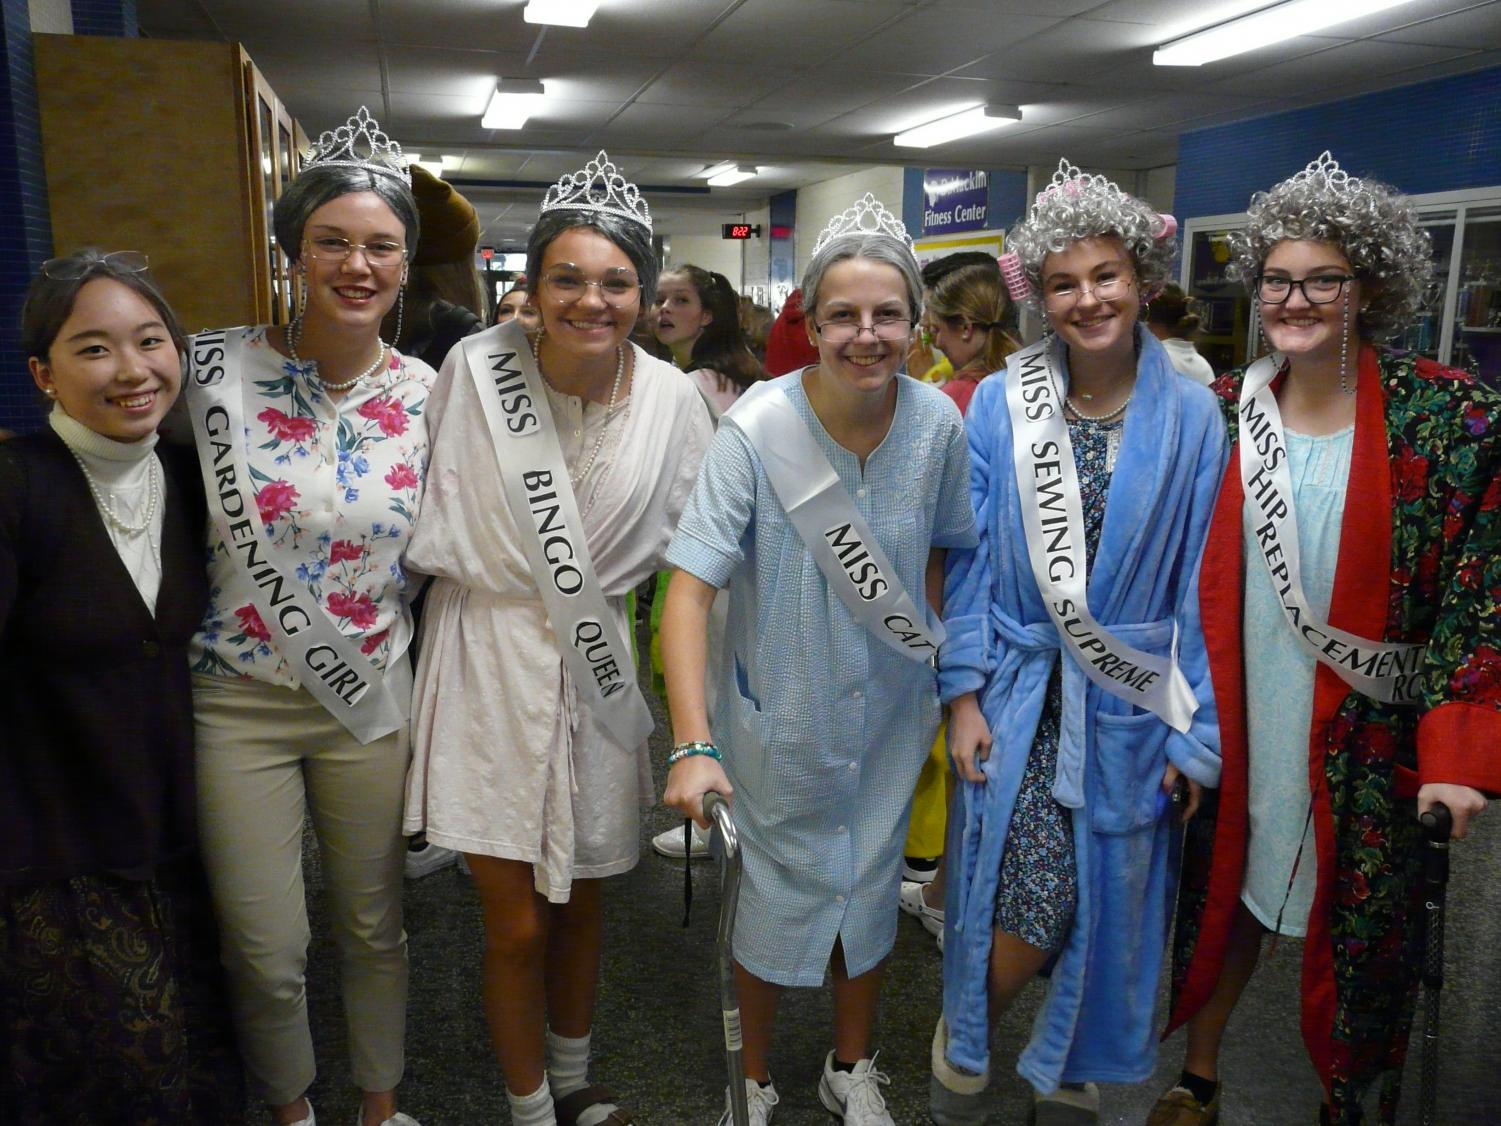 Winners+of+the+spirit+day+included+this+group+of+pageant+grandmas.+Chiara+Tomasetti+poses+as+%22Miss+Hip+Replacement.%22